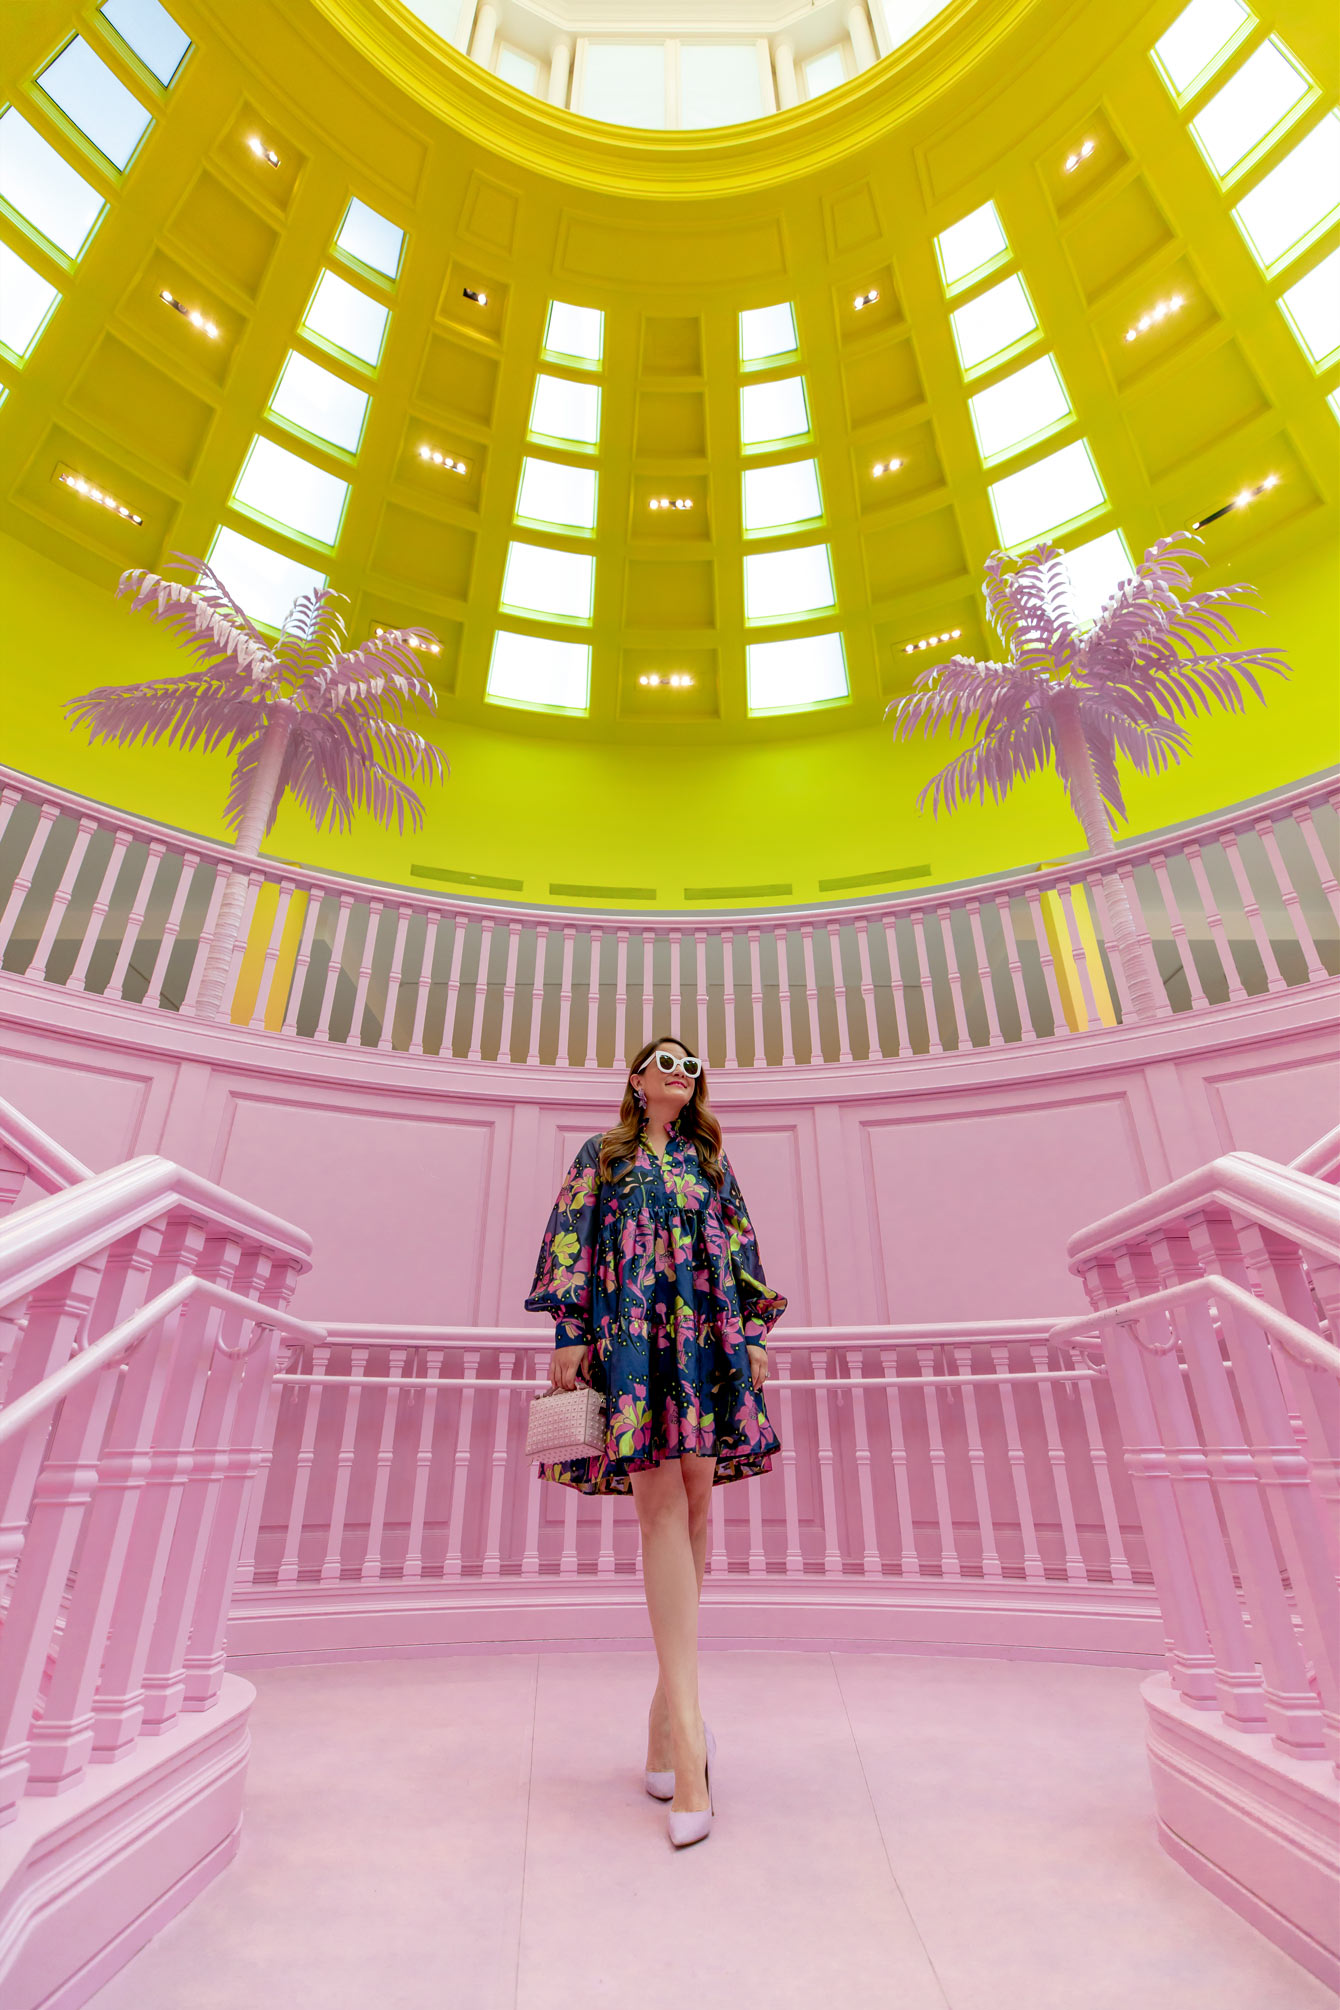 Louis Vuitton Pink Stairs Los Angeles